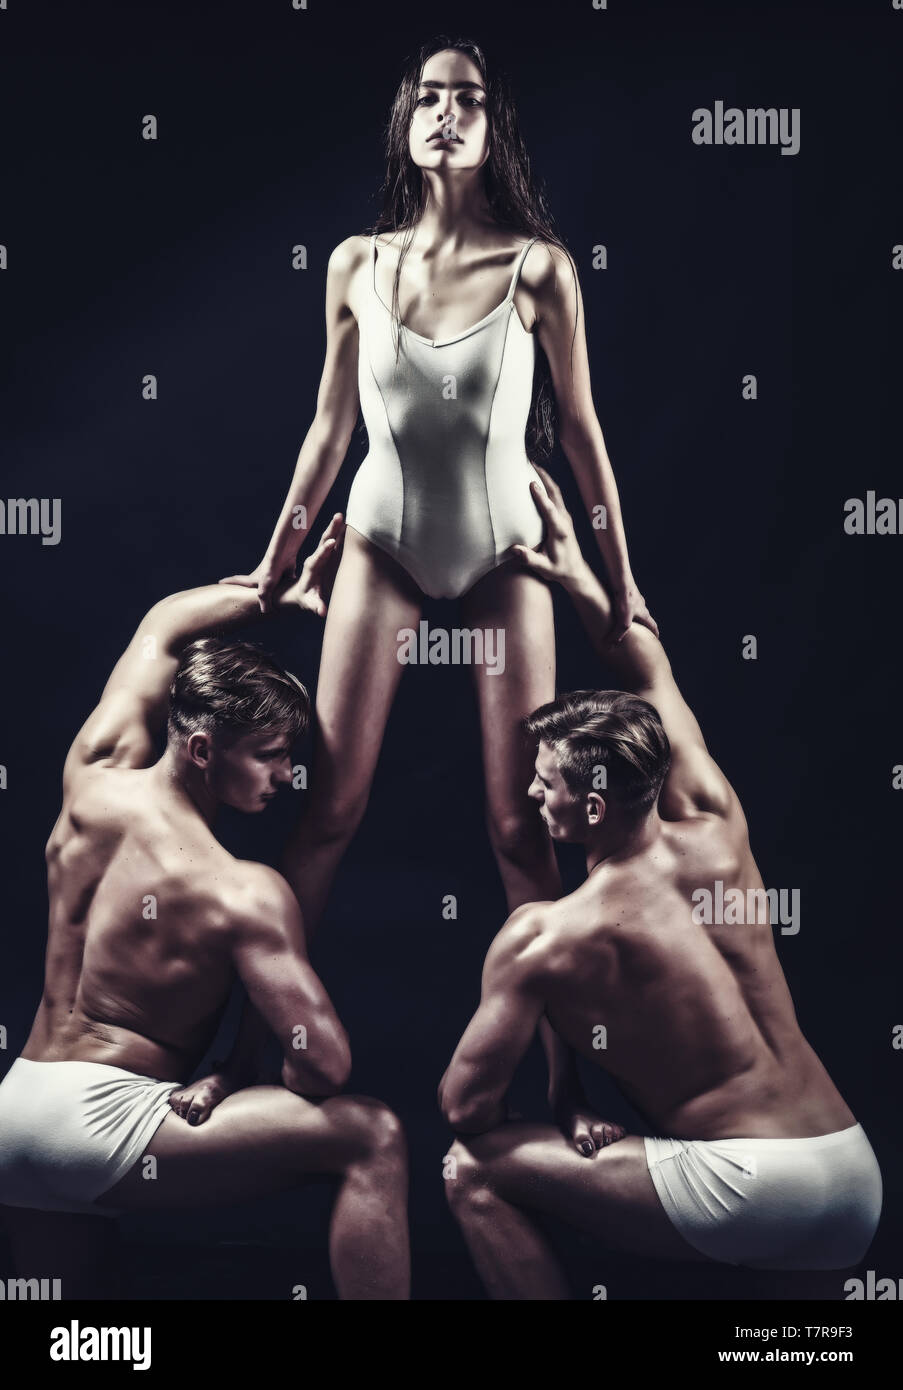 Flexibility in acrobatics. flexibility of muscular men and pretty woman in white sportswear. - Stock Image